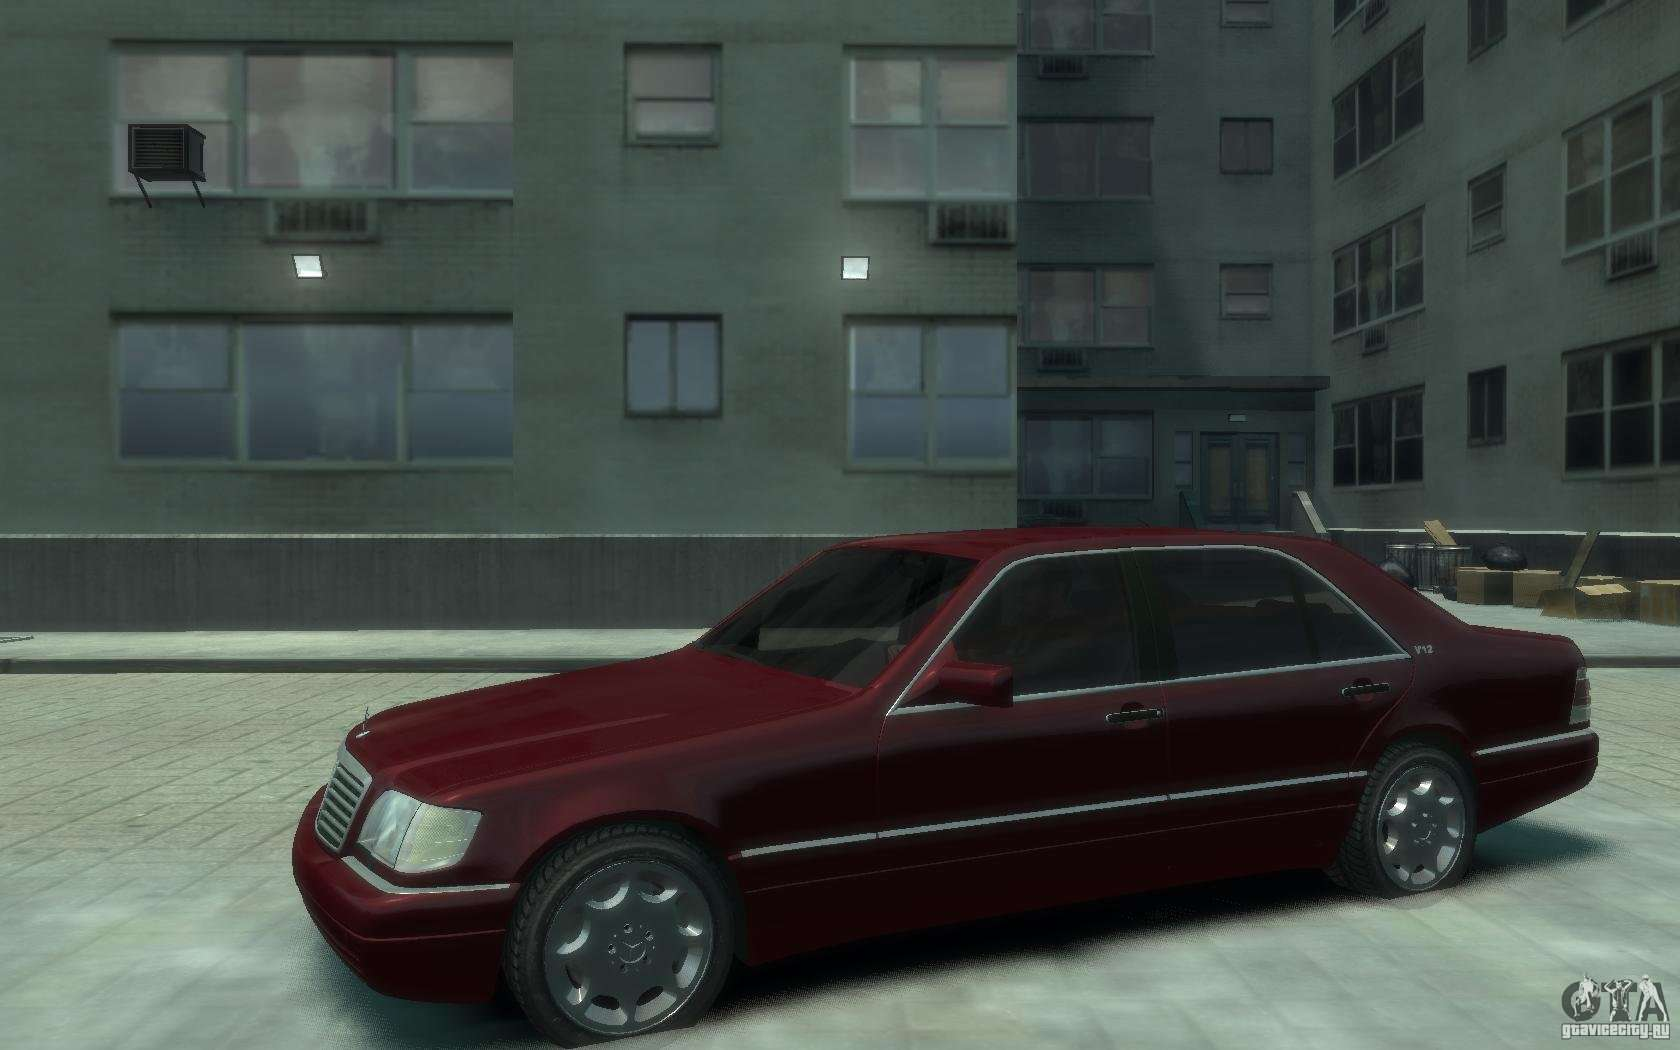 Mercedes benz s600 w140 pour gta 4 for Mercedes benz s600 amg 2010